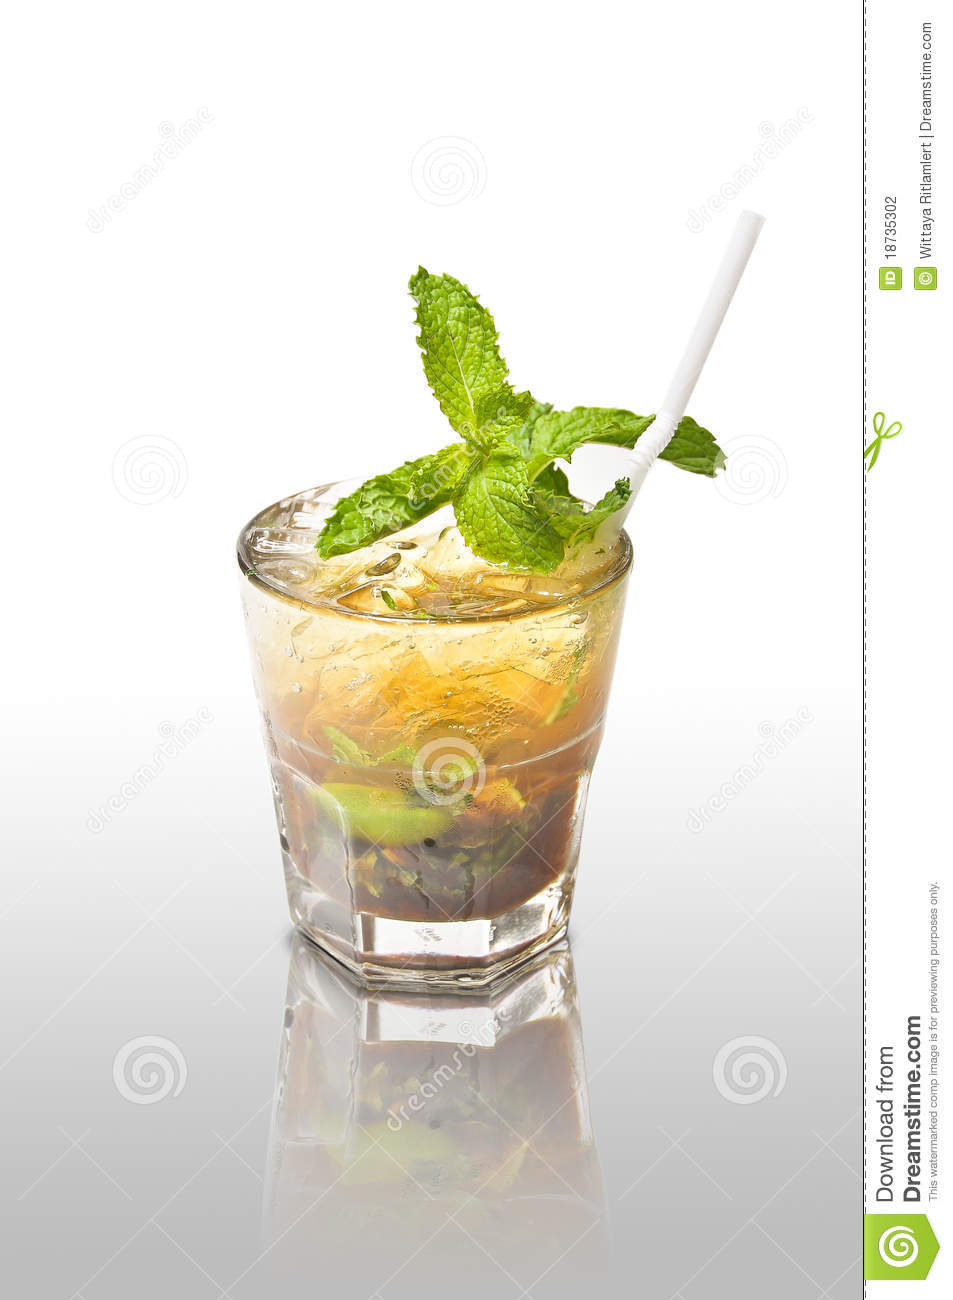 Caipirinha Wallpaper Drink Cocktail Alcohol Party Fun Background Object Stock Photo